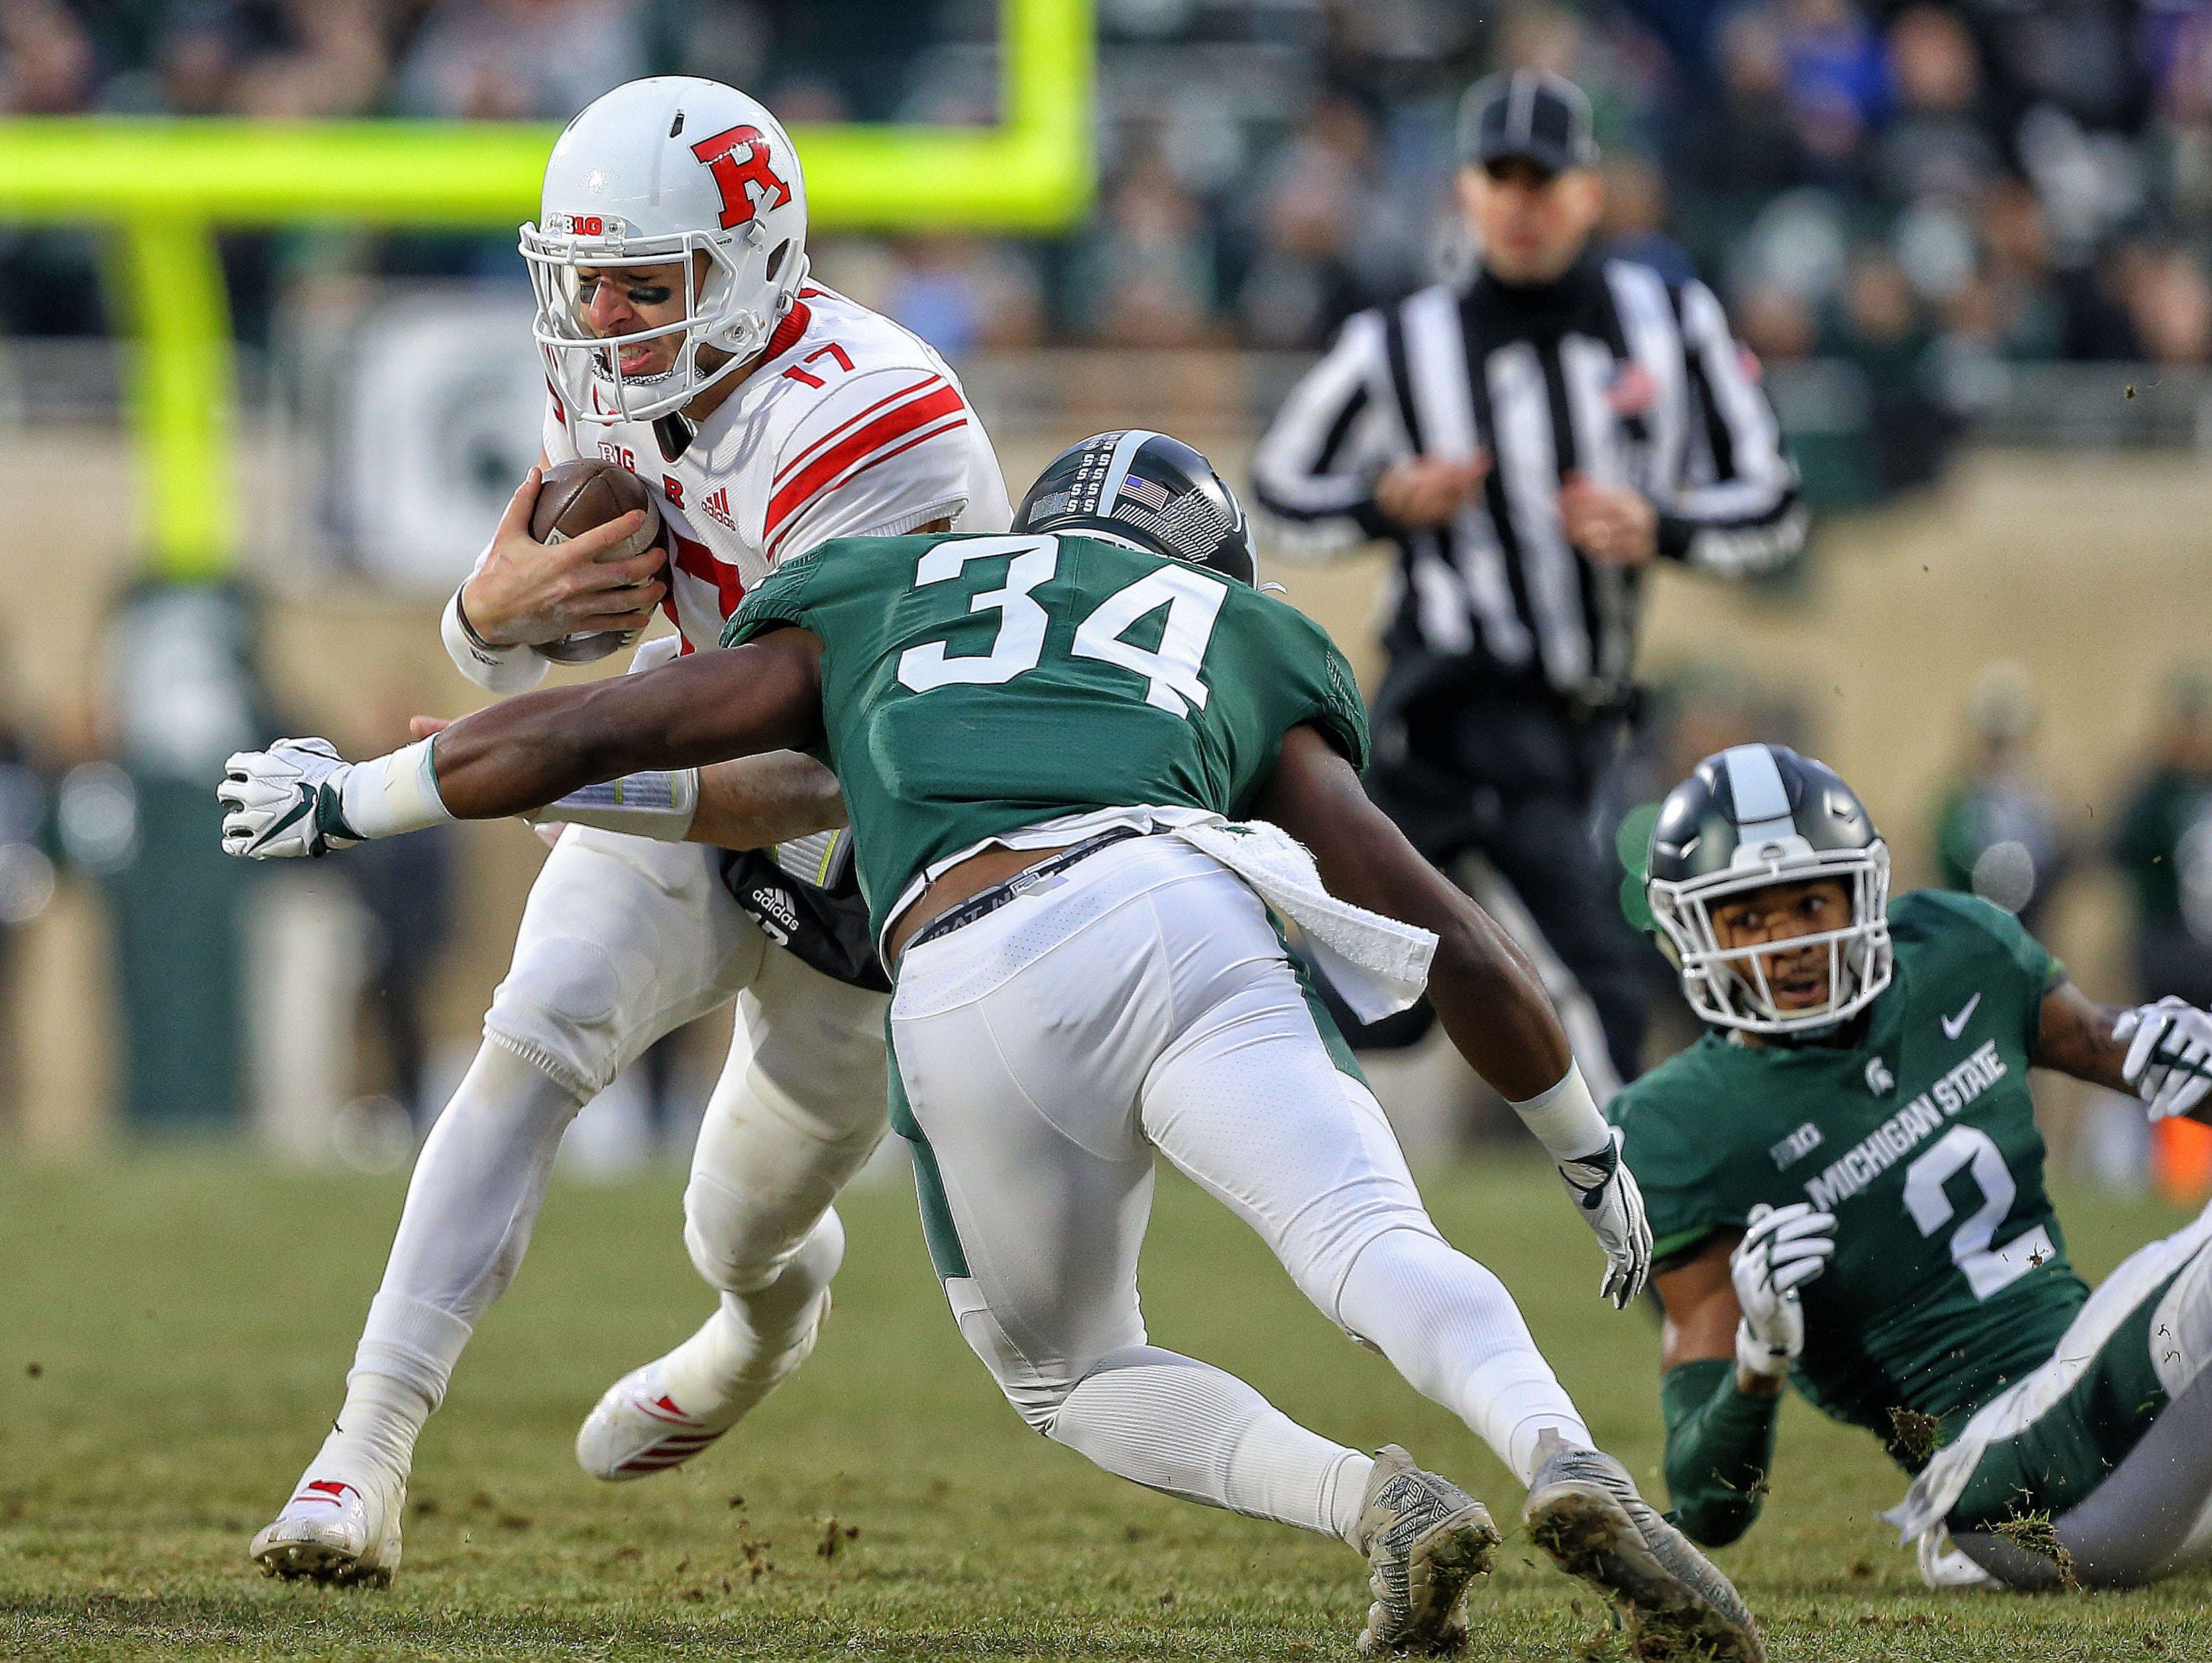 Nov 24, 2018; East Lansing, MI, USA; Rutgers Scarlet Knights quarterback Giovanni Rescigno (17) is tackled by Michigan State Spartans linebacker Antjuan Simmons (34) during the first quarter of a game at Spartan Stadium. Mandatory Credit: Mike Carter-USA TODAY Sports